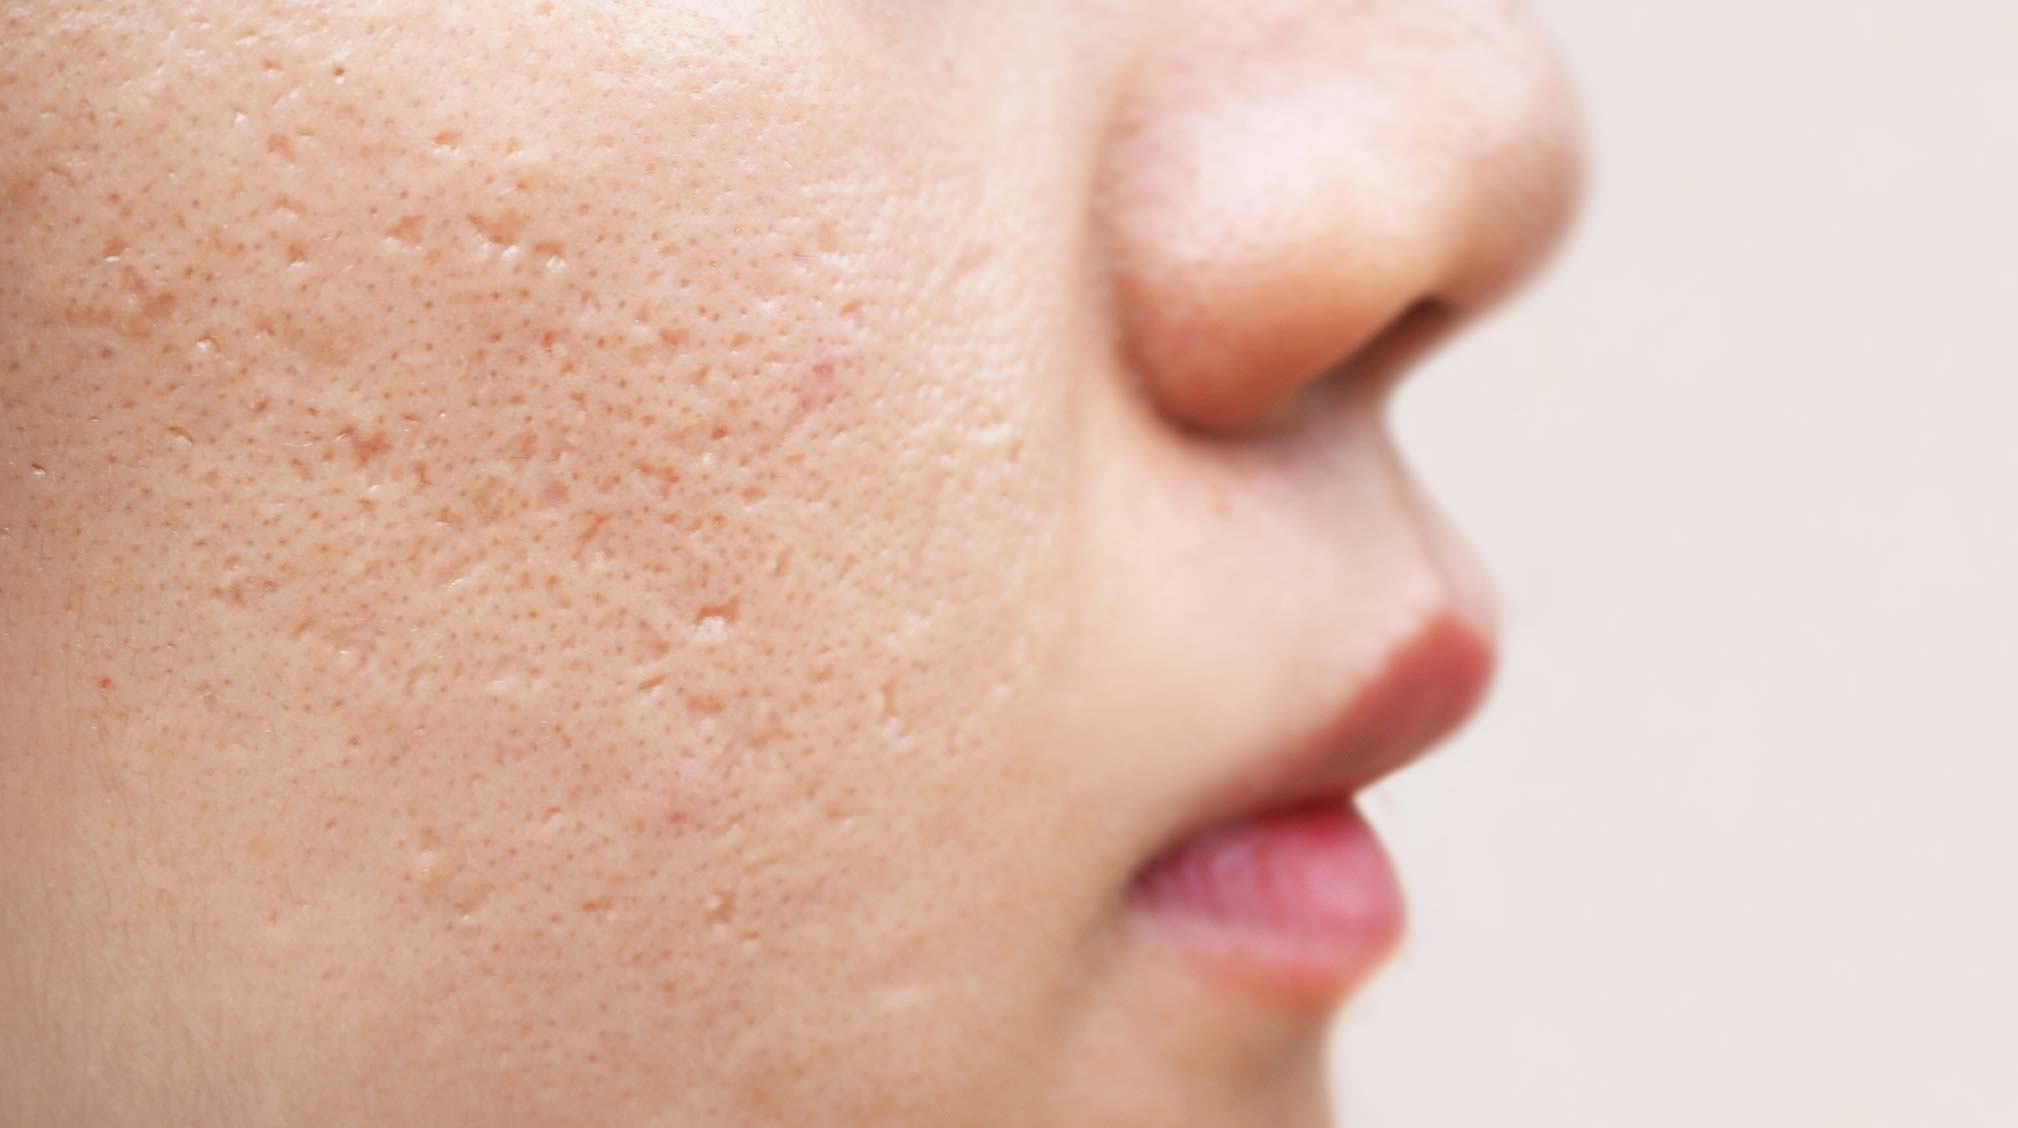 How to get rid of acne scars according to experts